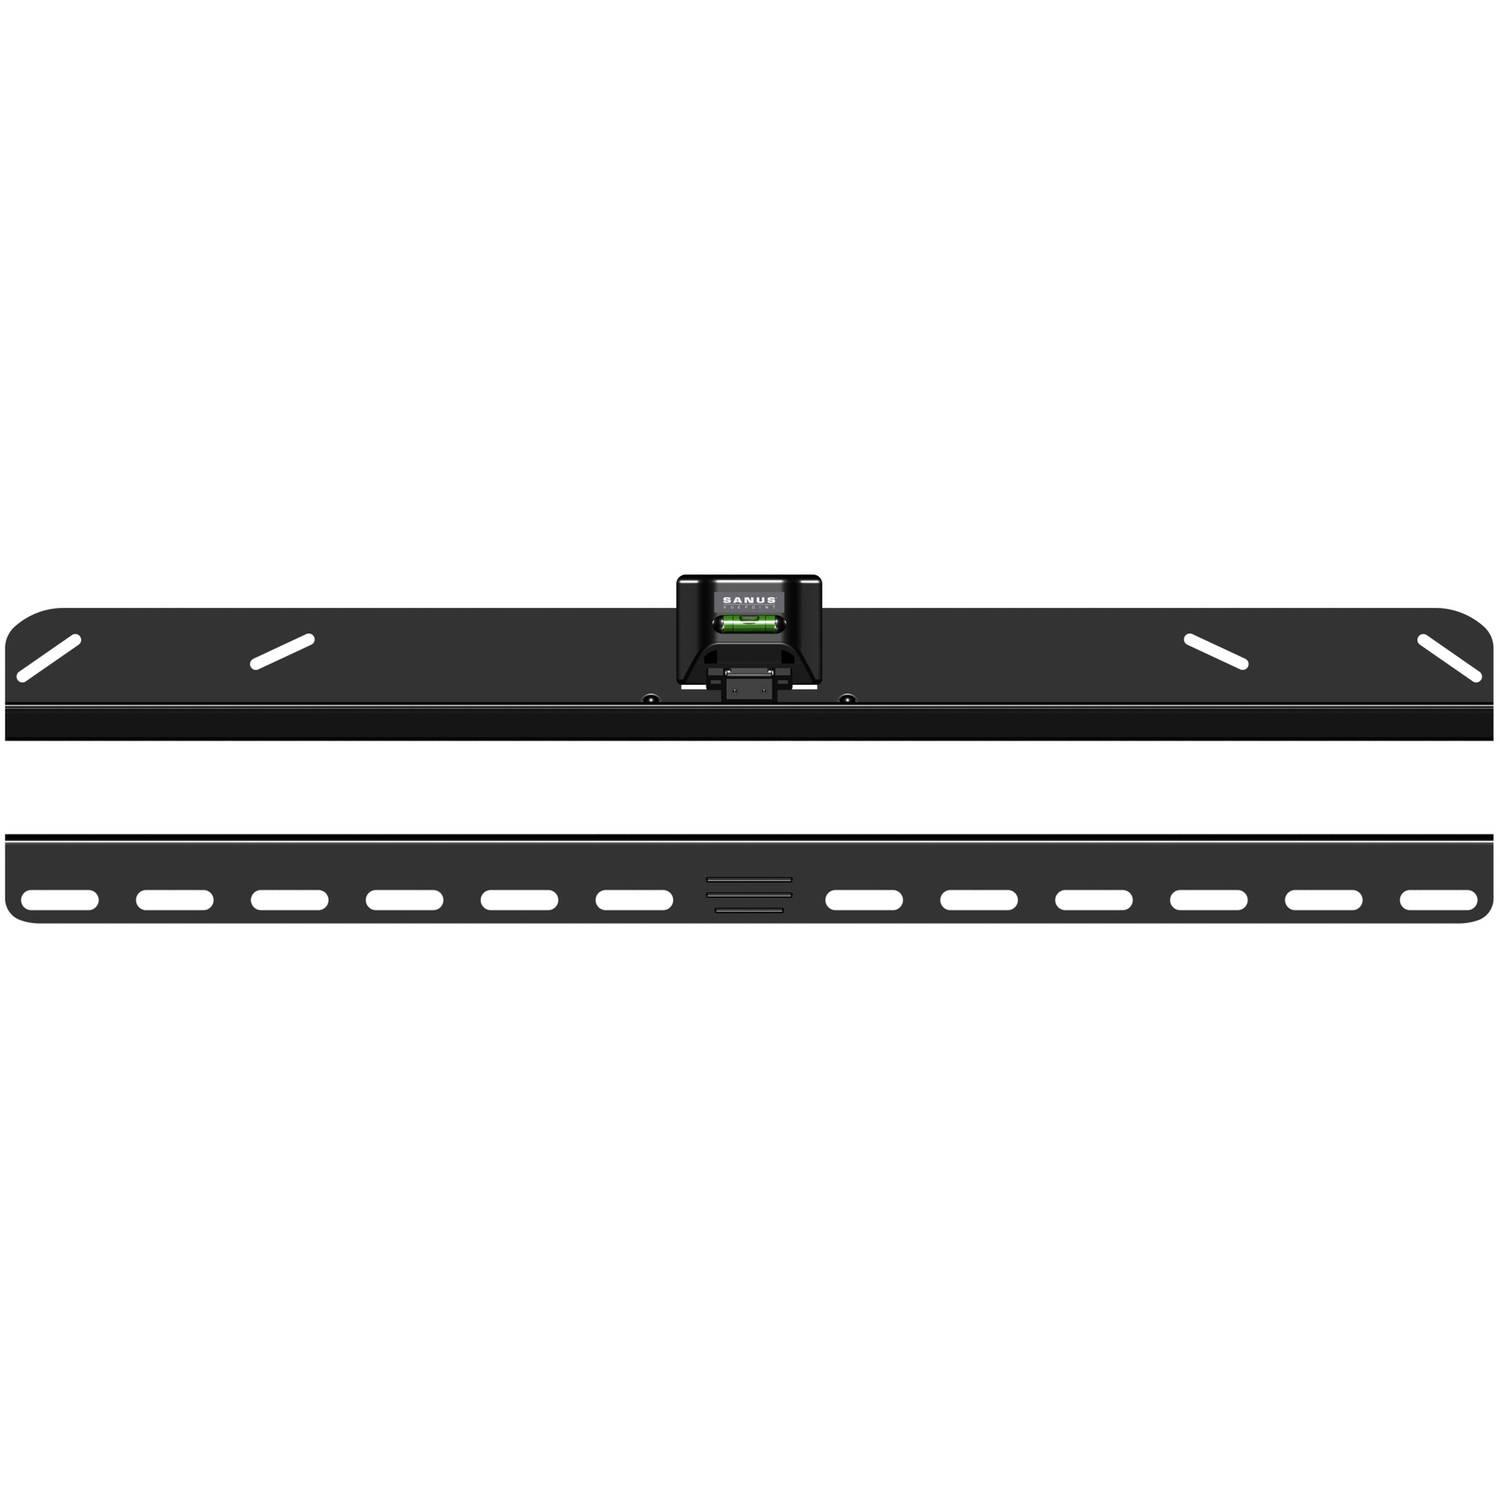 Sanus Vuepoint Simplysafe Tv Wall Mount For 47 80 Tvs